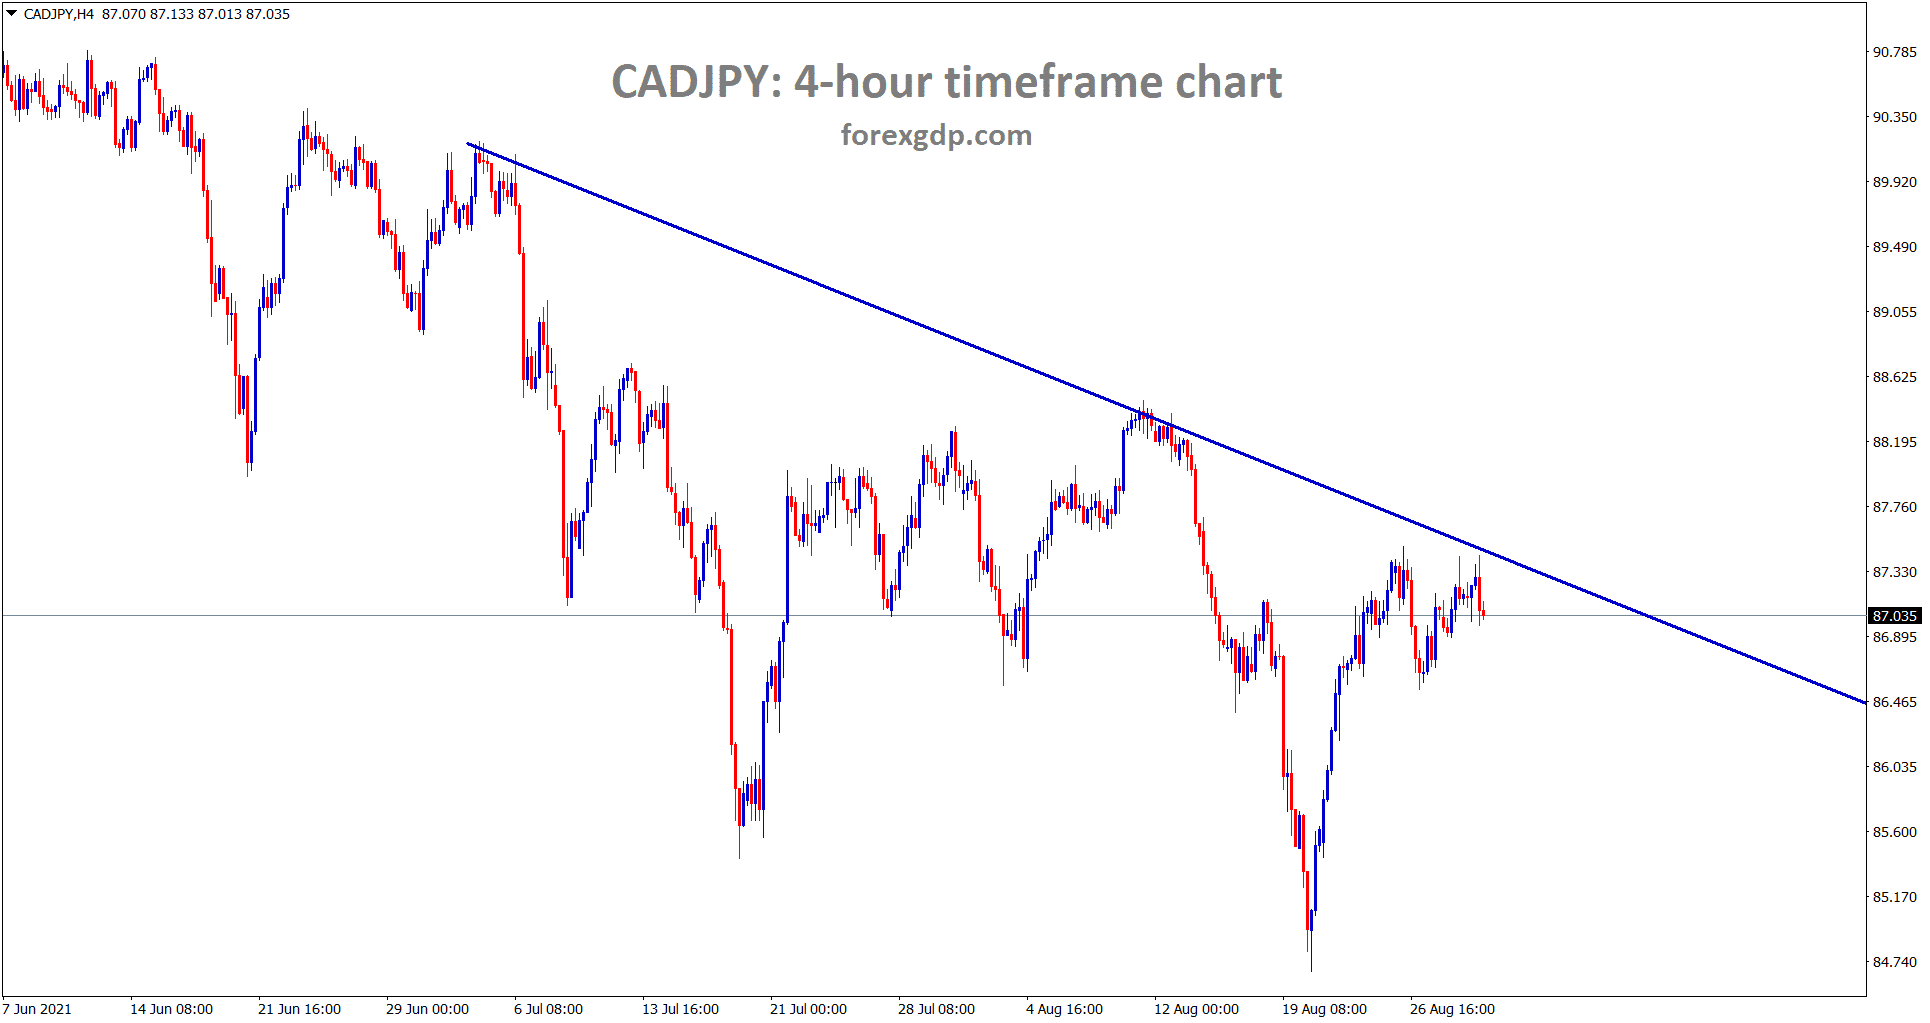 CADJPY reached the lower high area of the downtrend line